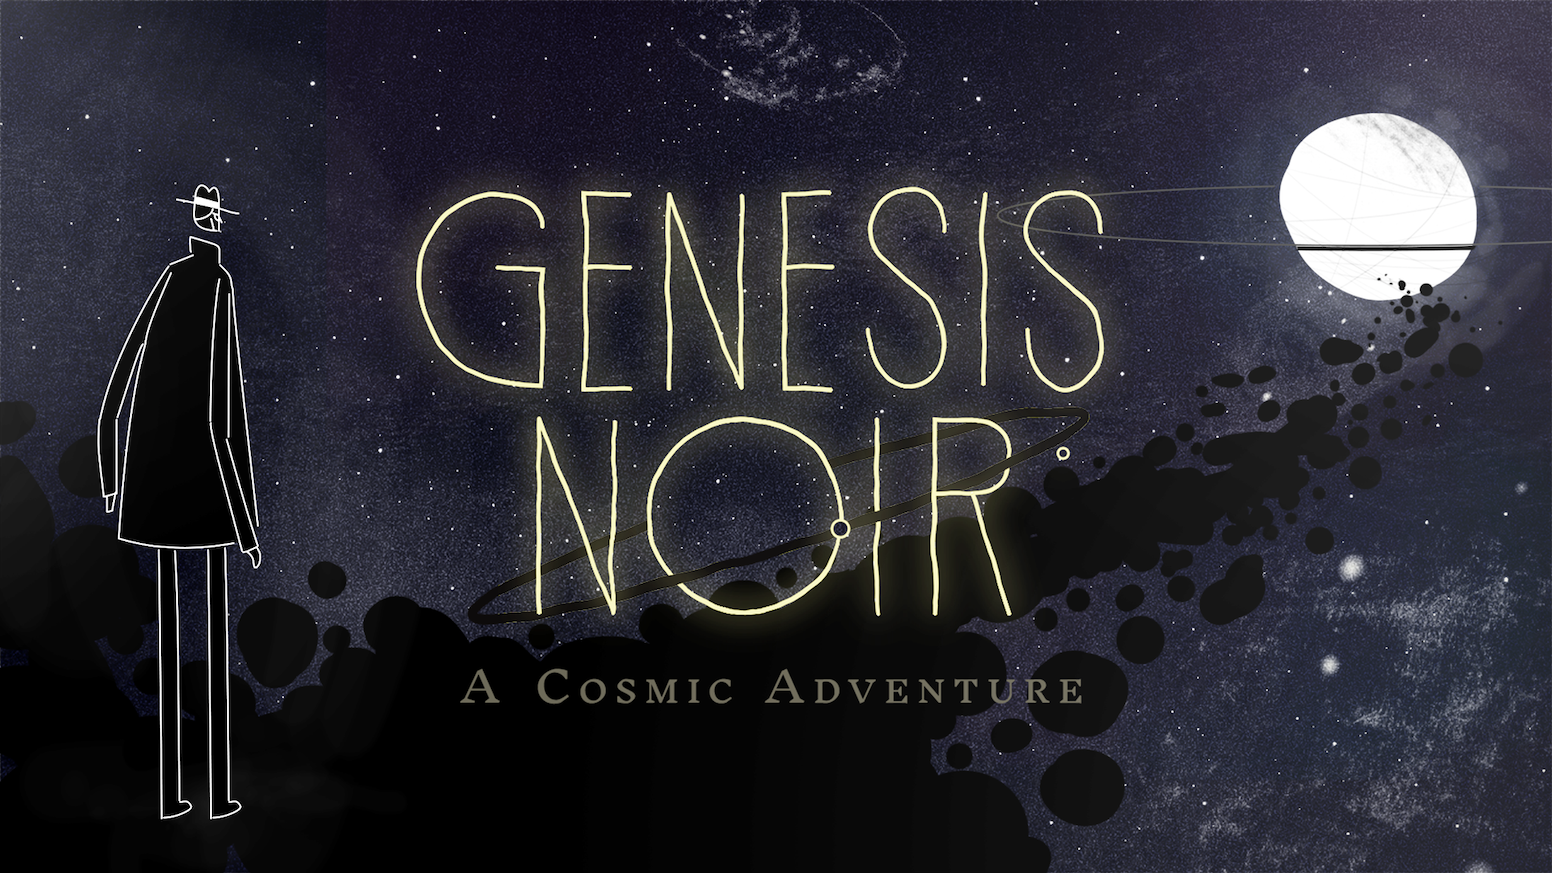 A noir adventure game set before, during, and after the Big Bang. To save your love, you must stop the expansion of the universe.